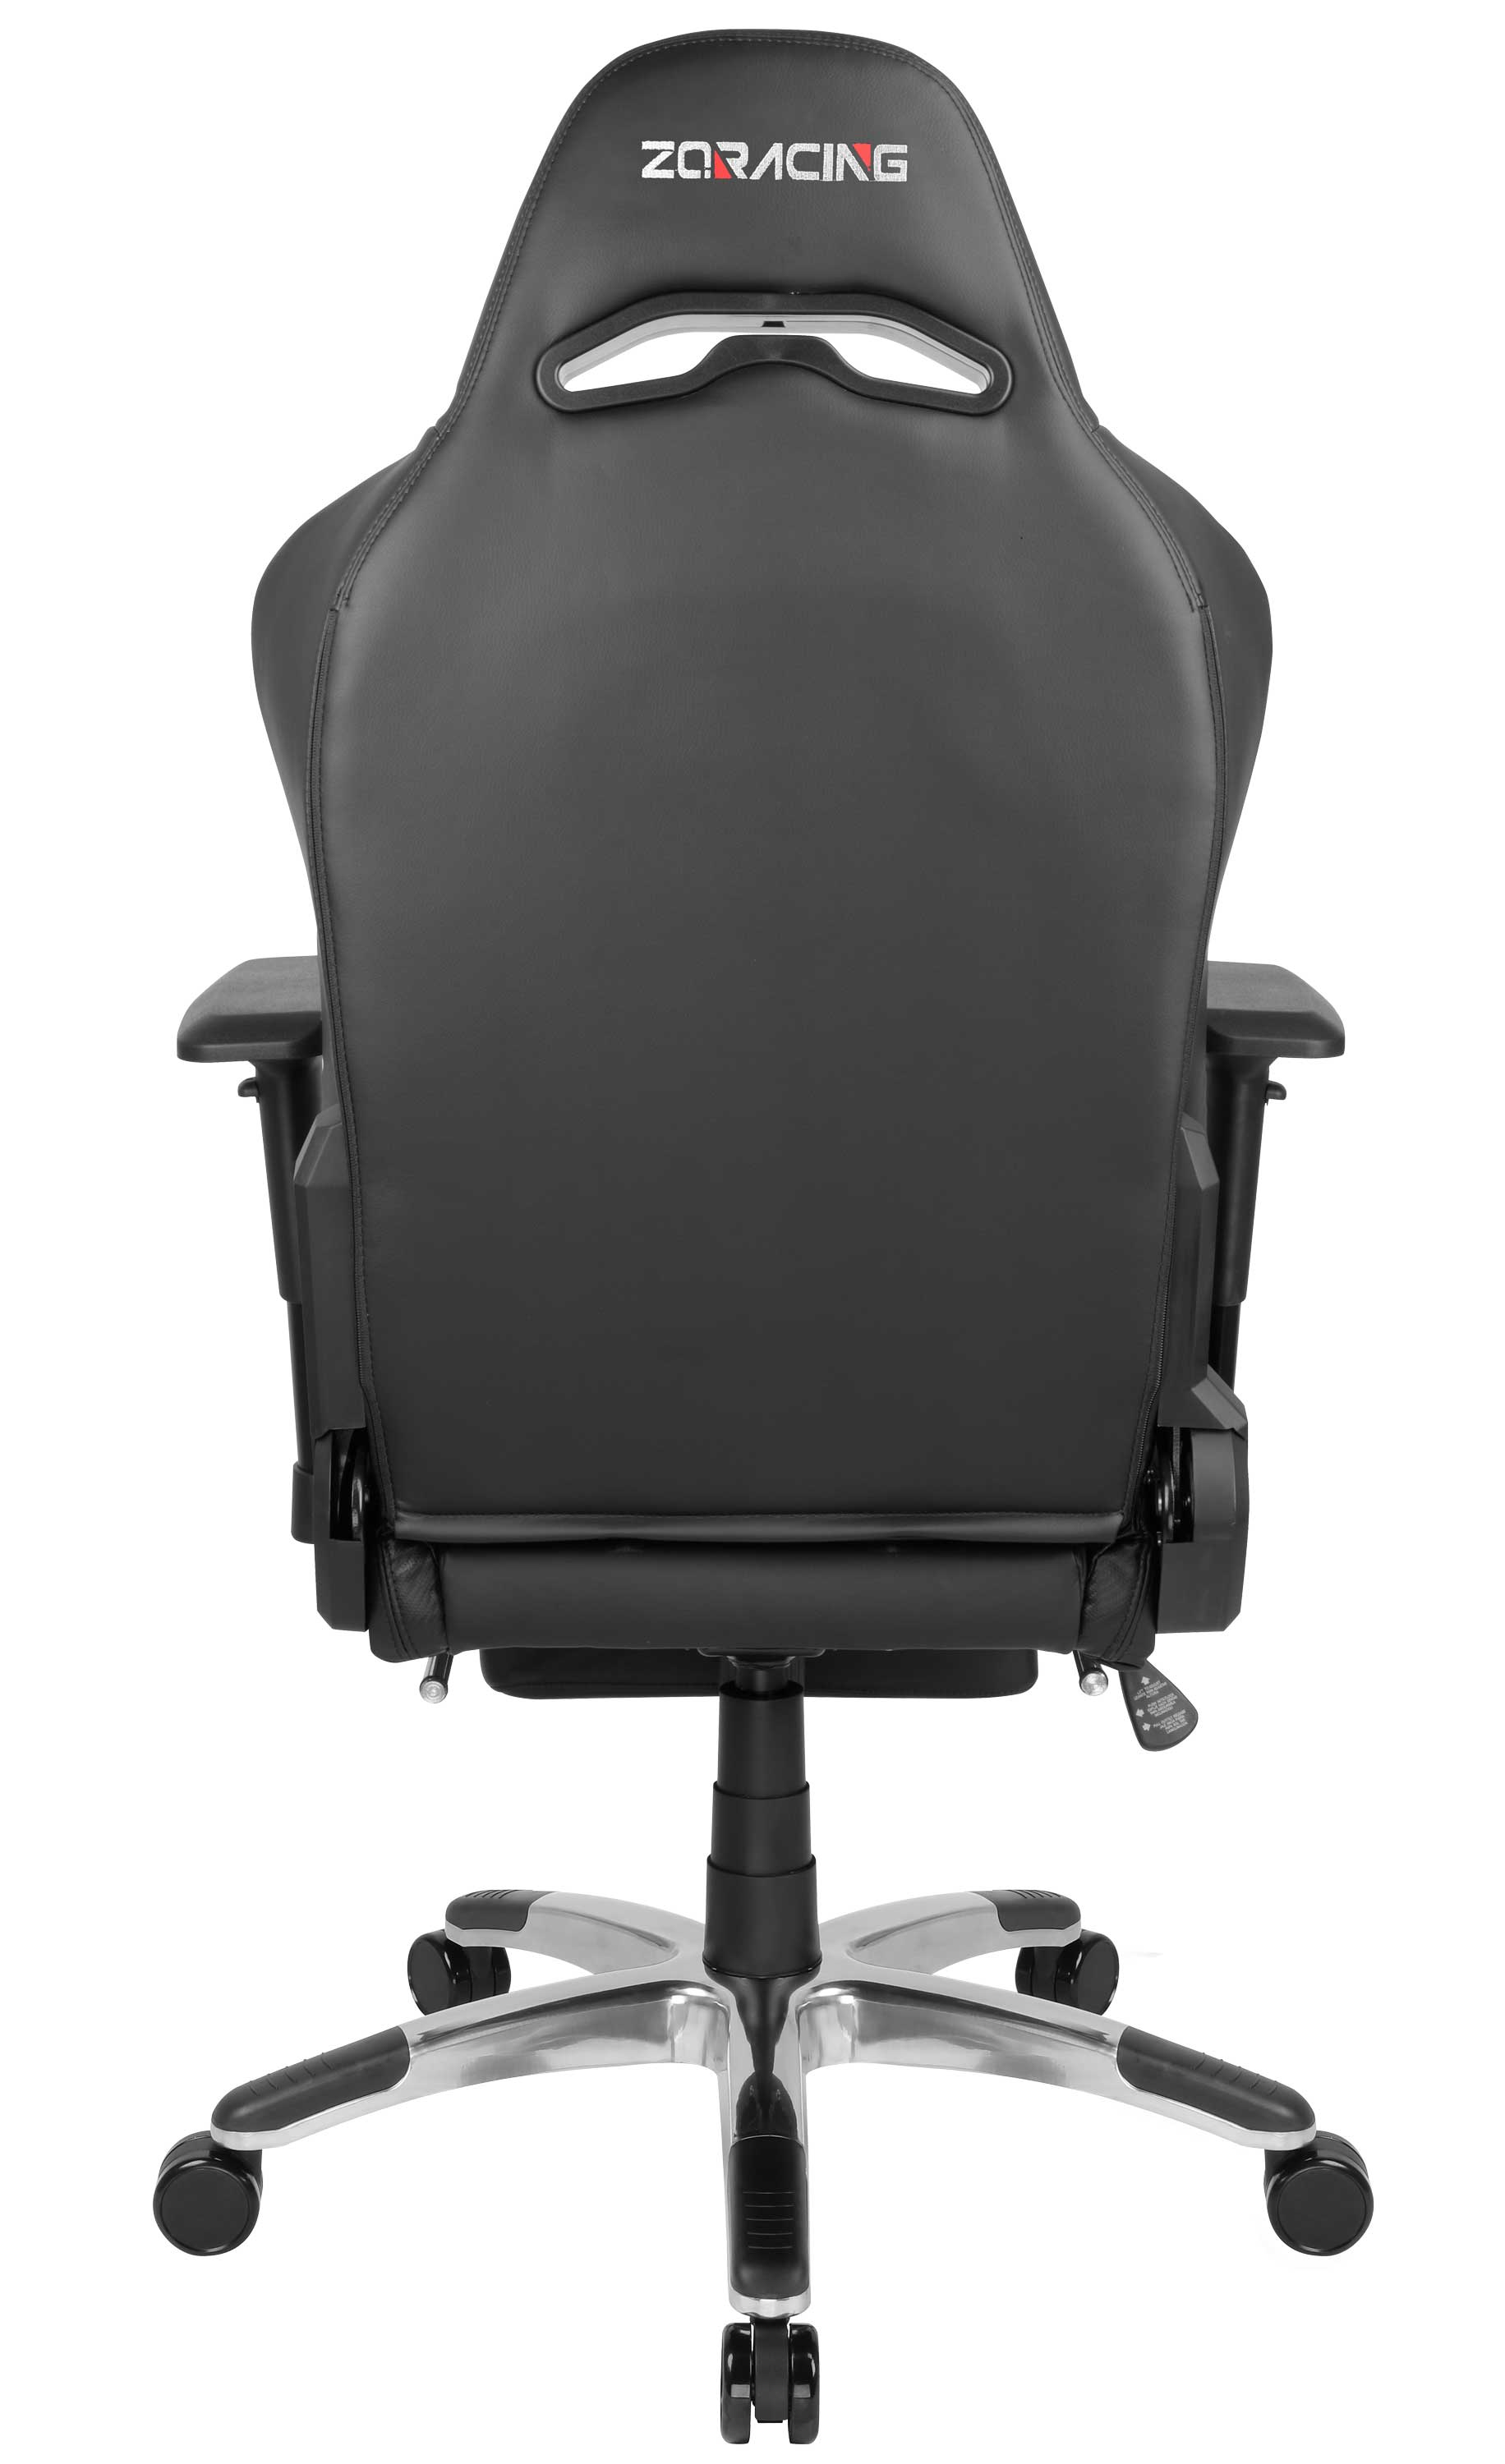 gaming clutch ad chairz crank purple office usa onylight series edition chair product